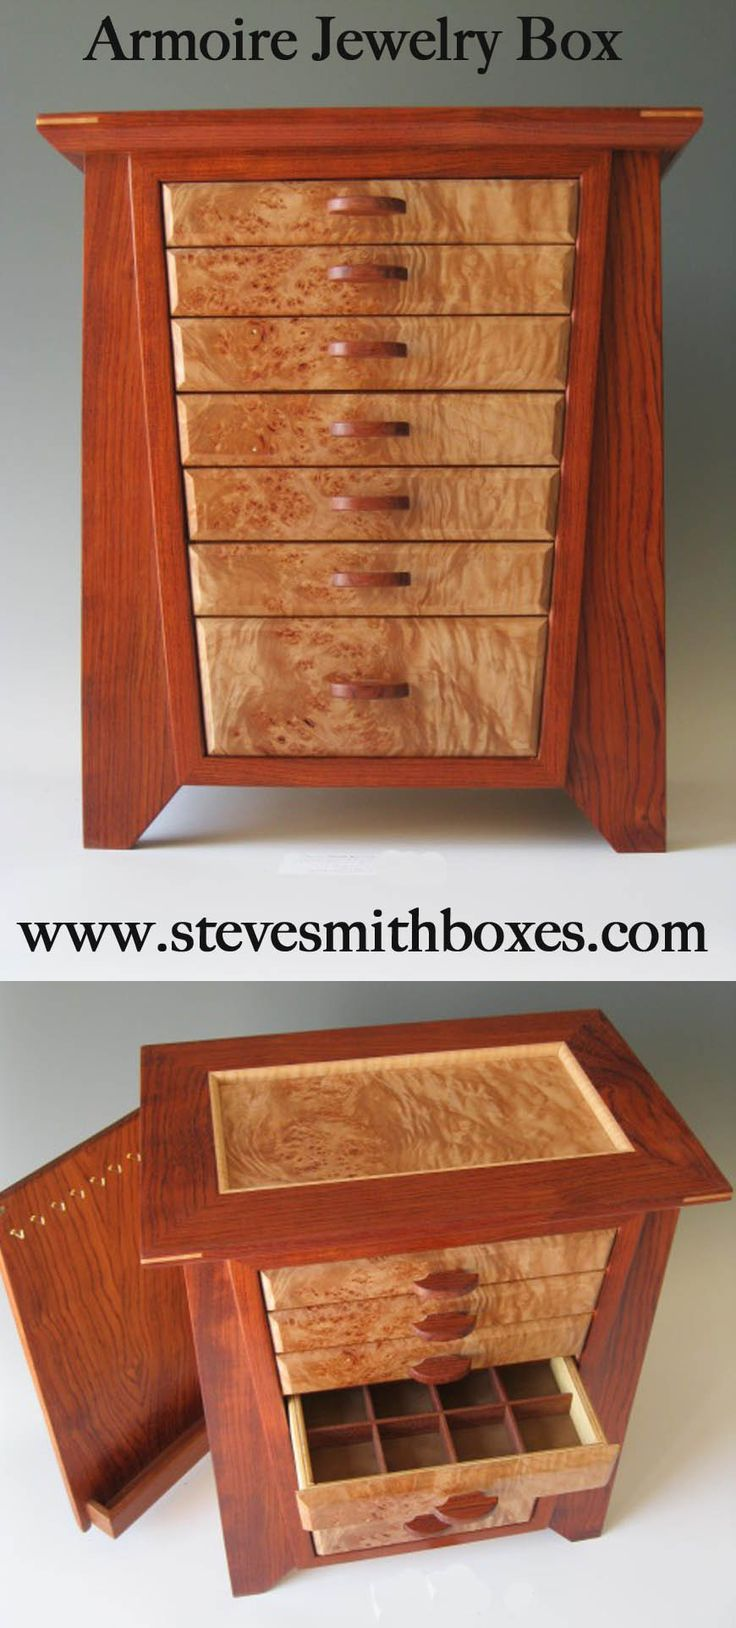 Handcrafted wood jewelry boxes - Armoire Jewelry Boxes Handcrafted Of Exotic Woods